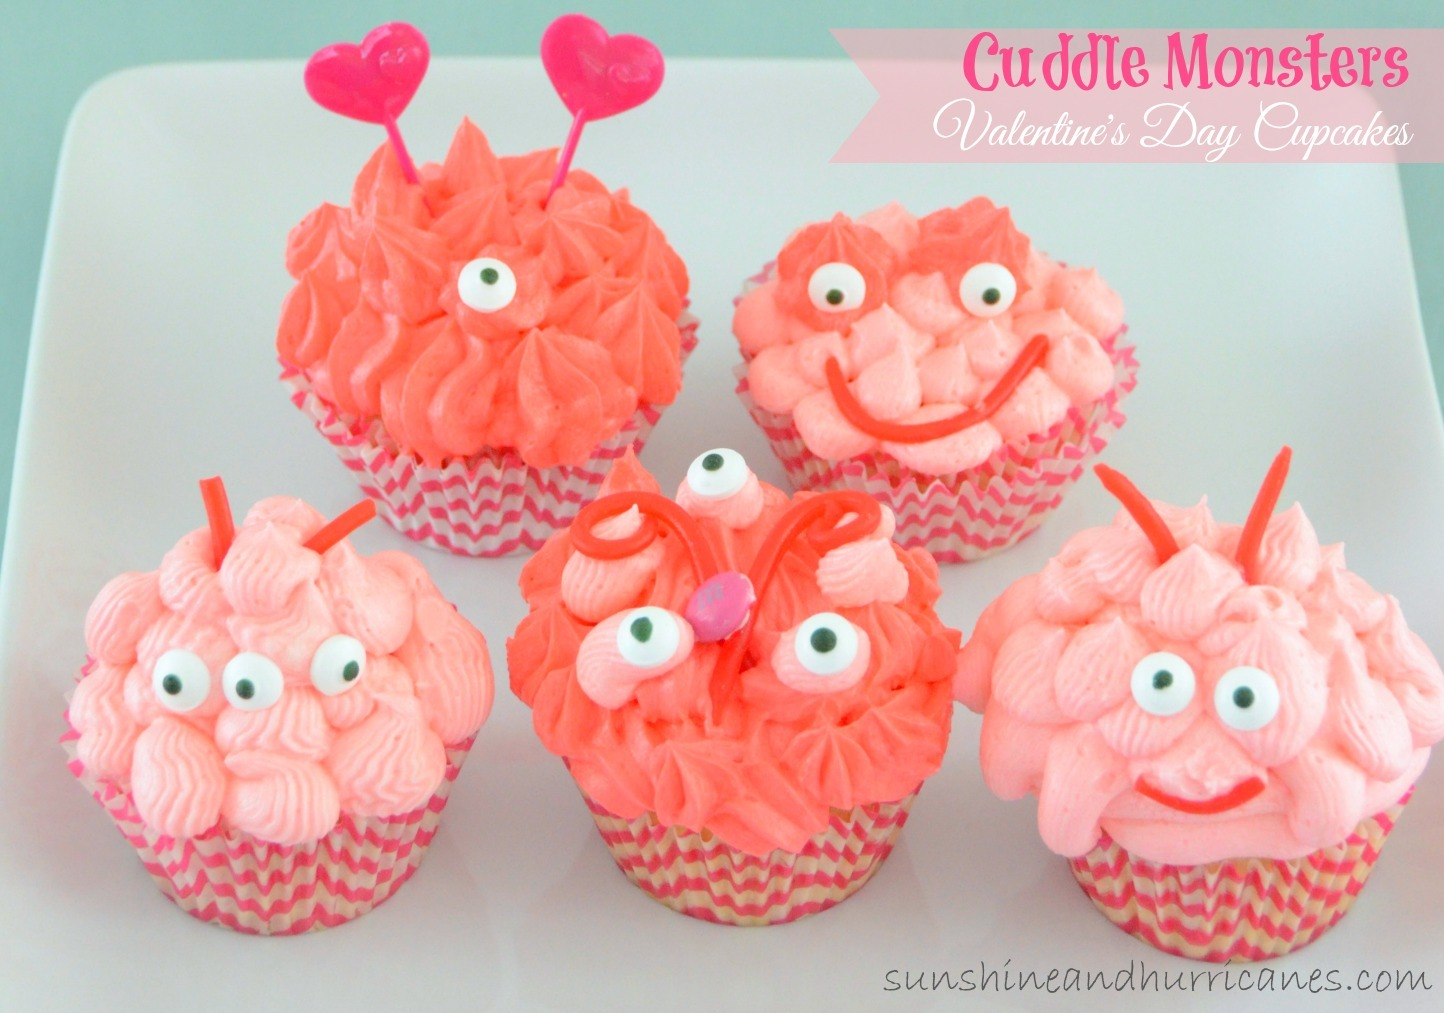 These cute little Valentine's Day Cupcakes are perfect for a class party or a baking day with the kids. Cuddle Monster Valentine's Day Cupcakes. sunshineandhurricanes.com